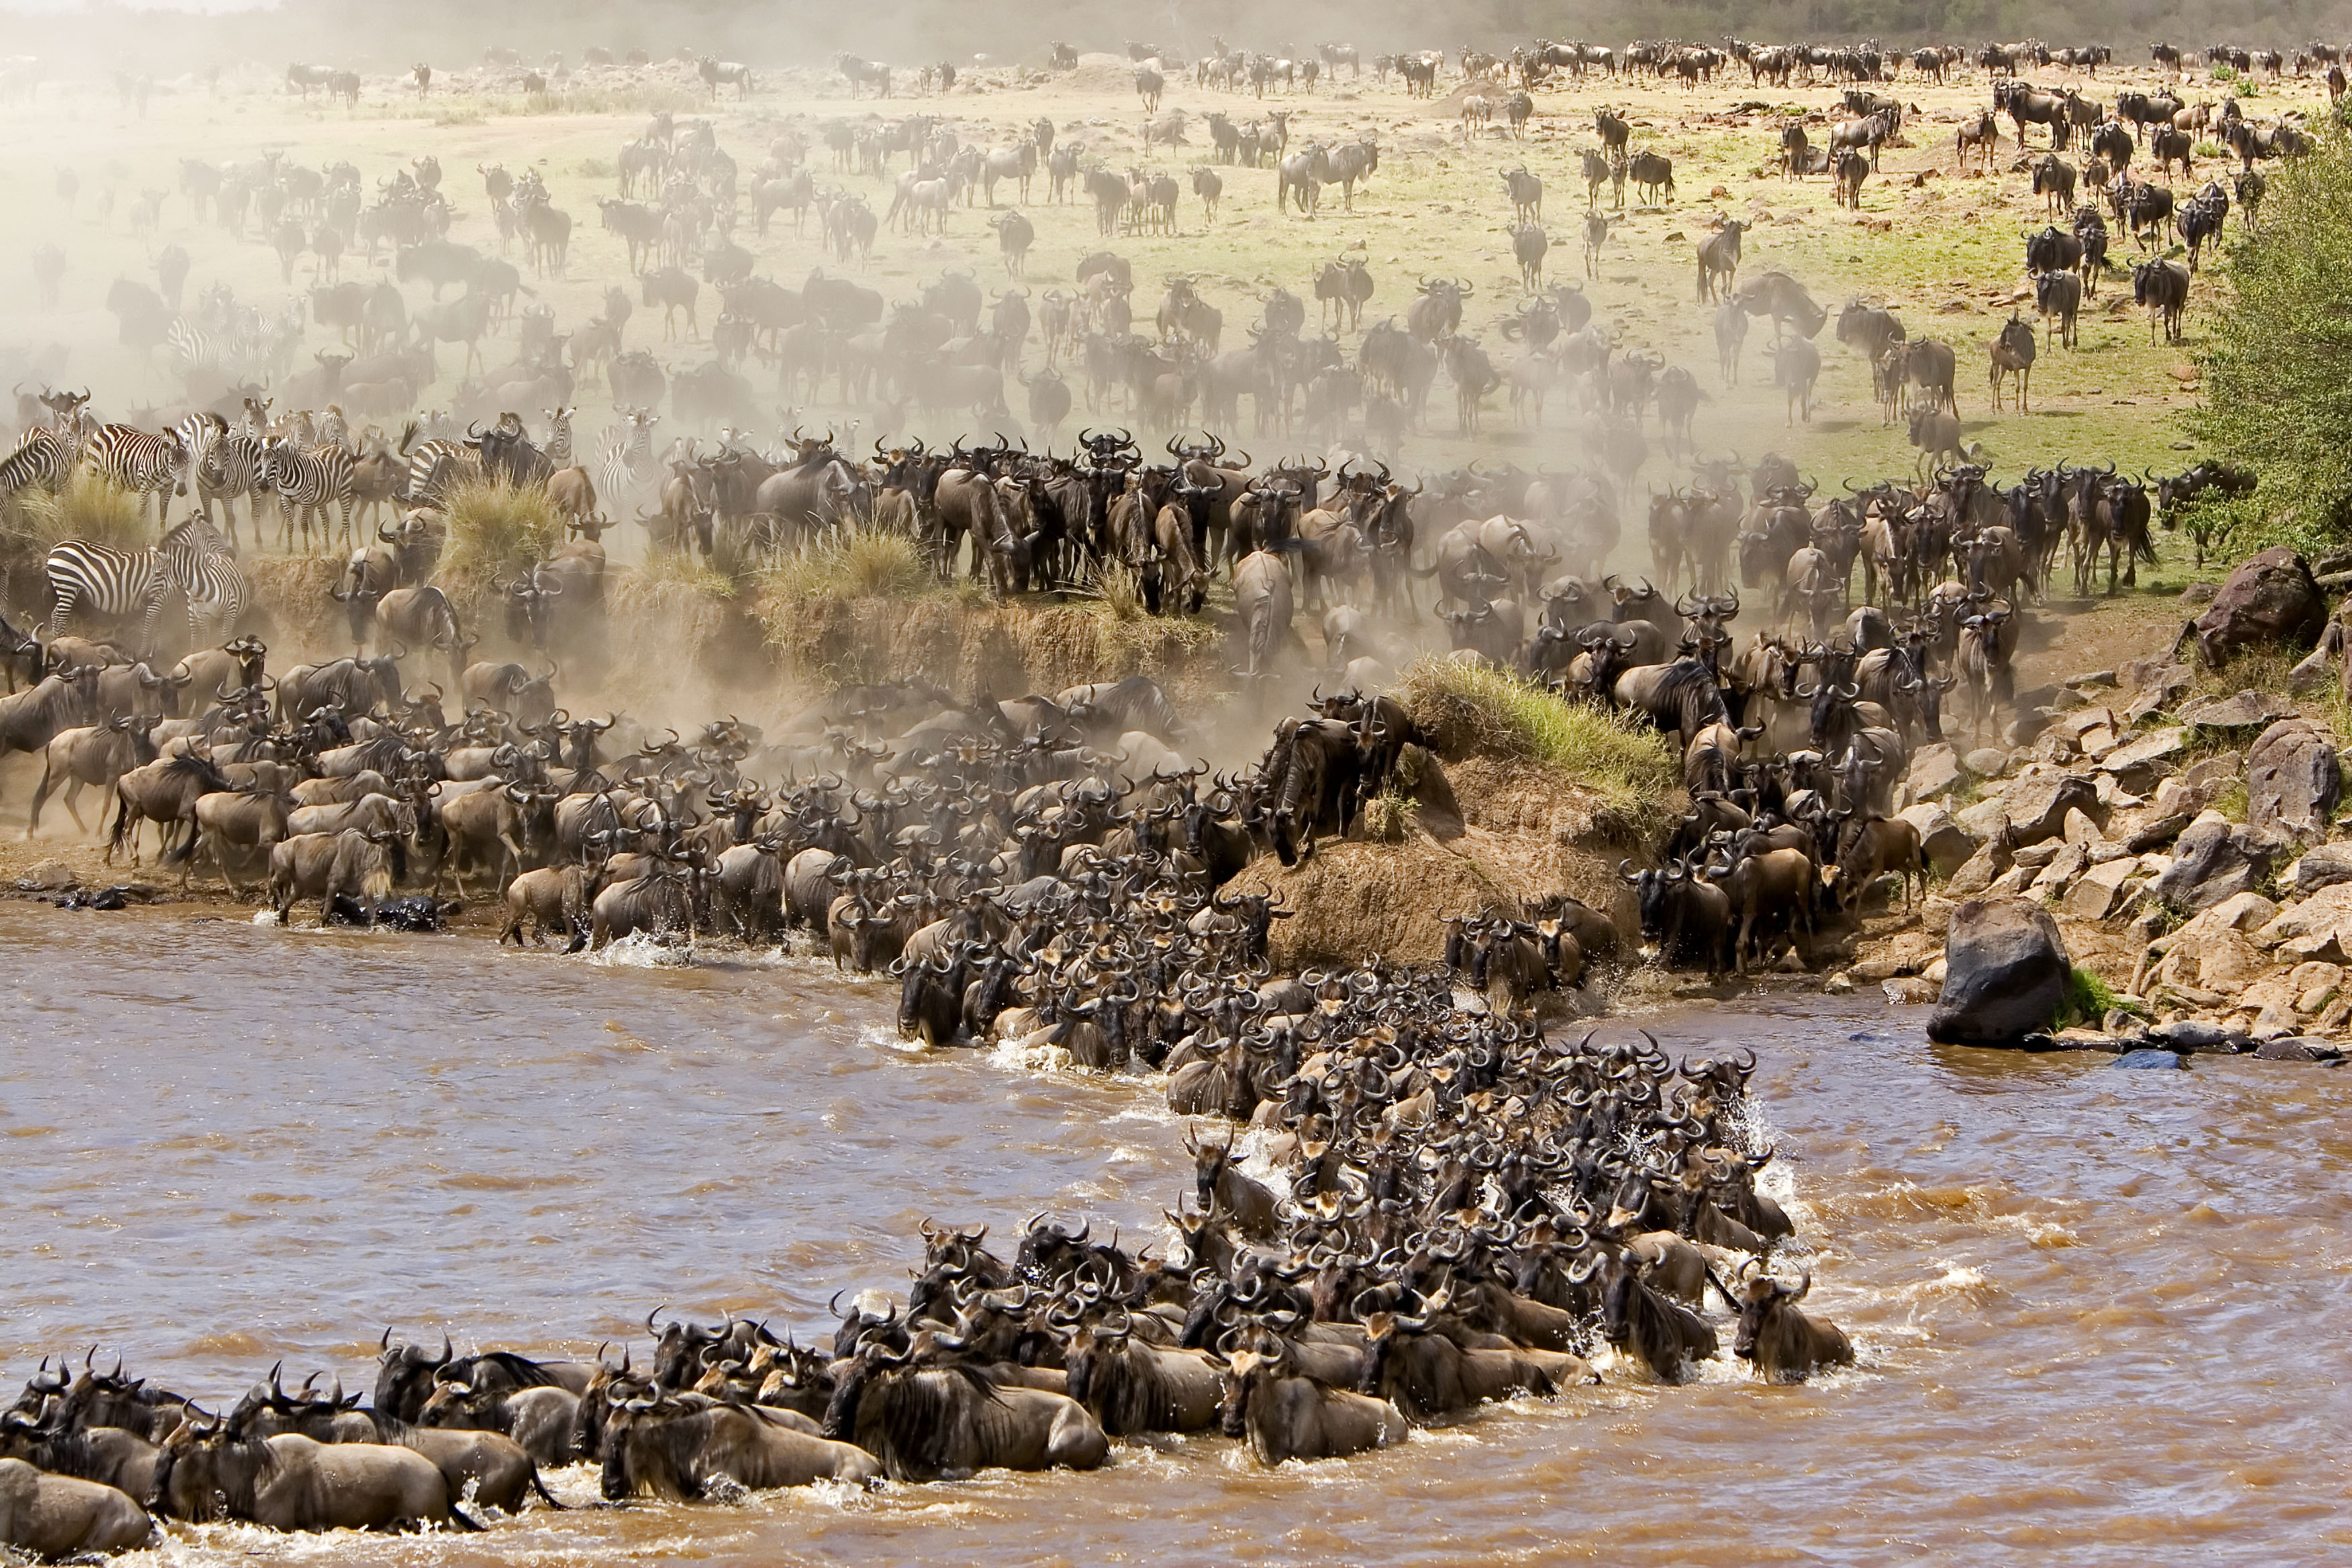 Grumeti River Crossing Wildebeest Migration